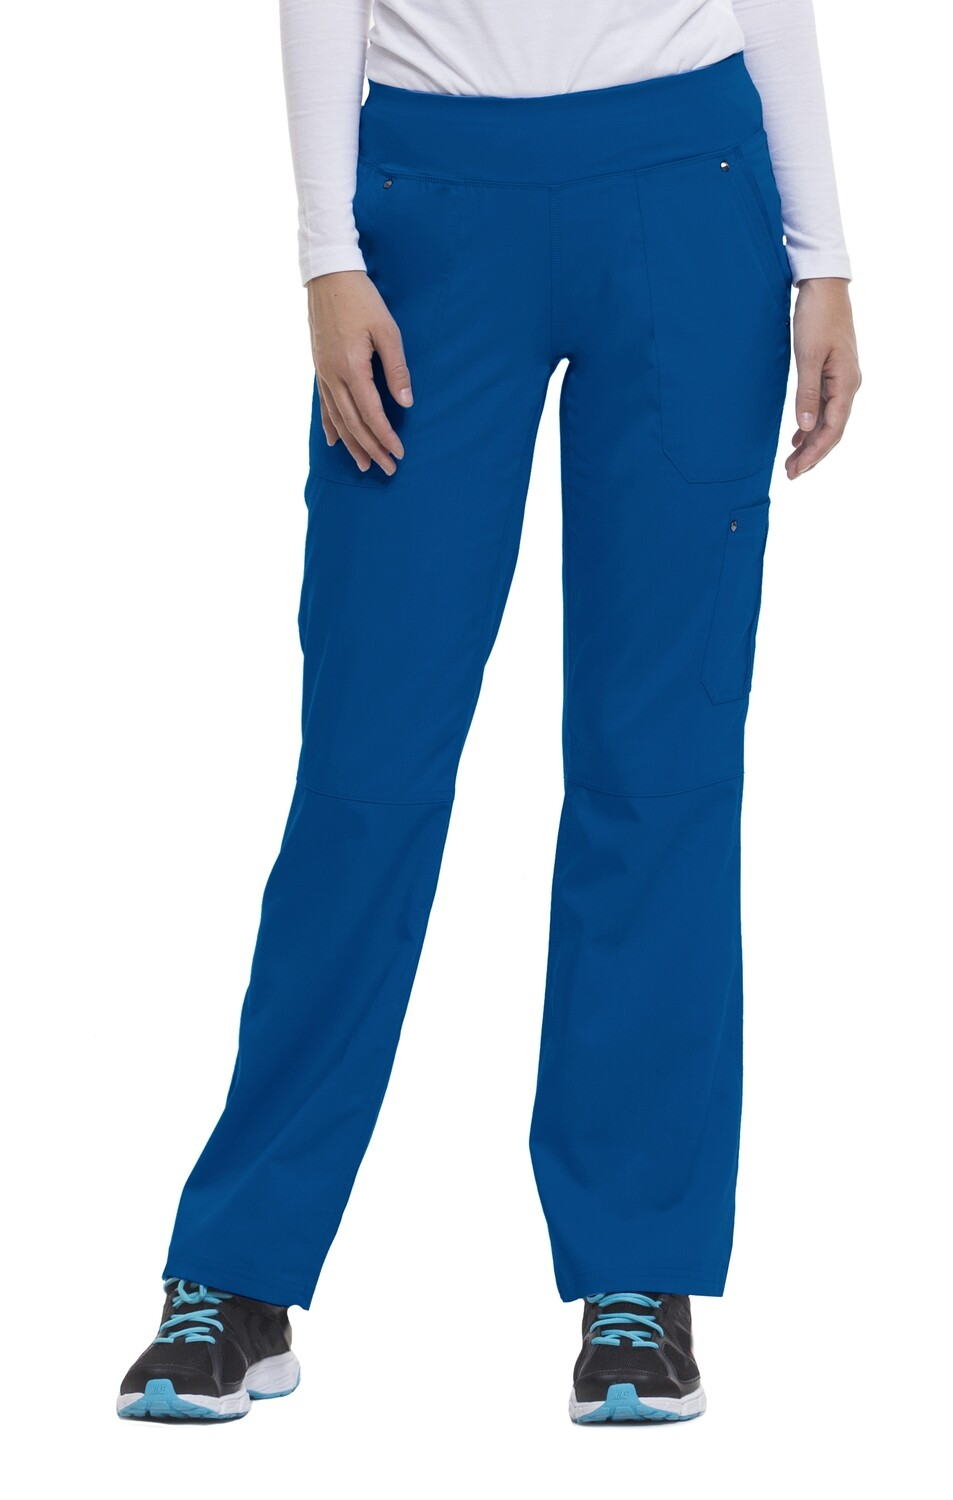 9133 ROYAL TORI PANT  - PL XL ROYAL P